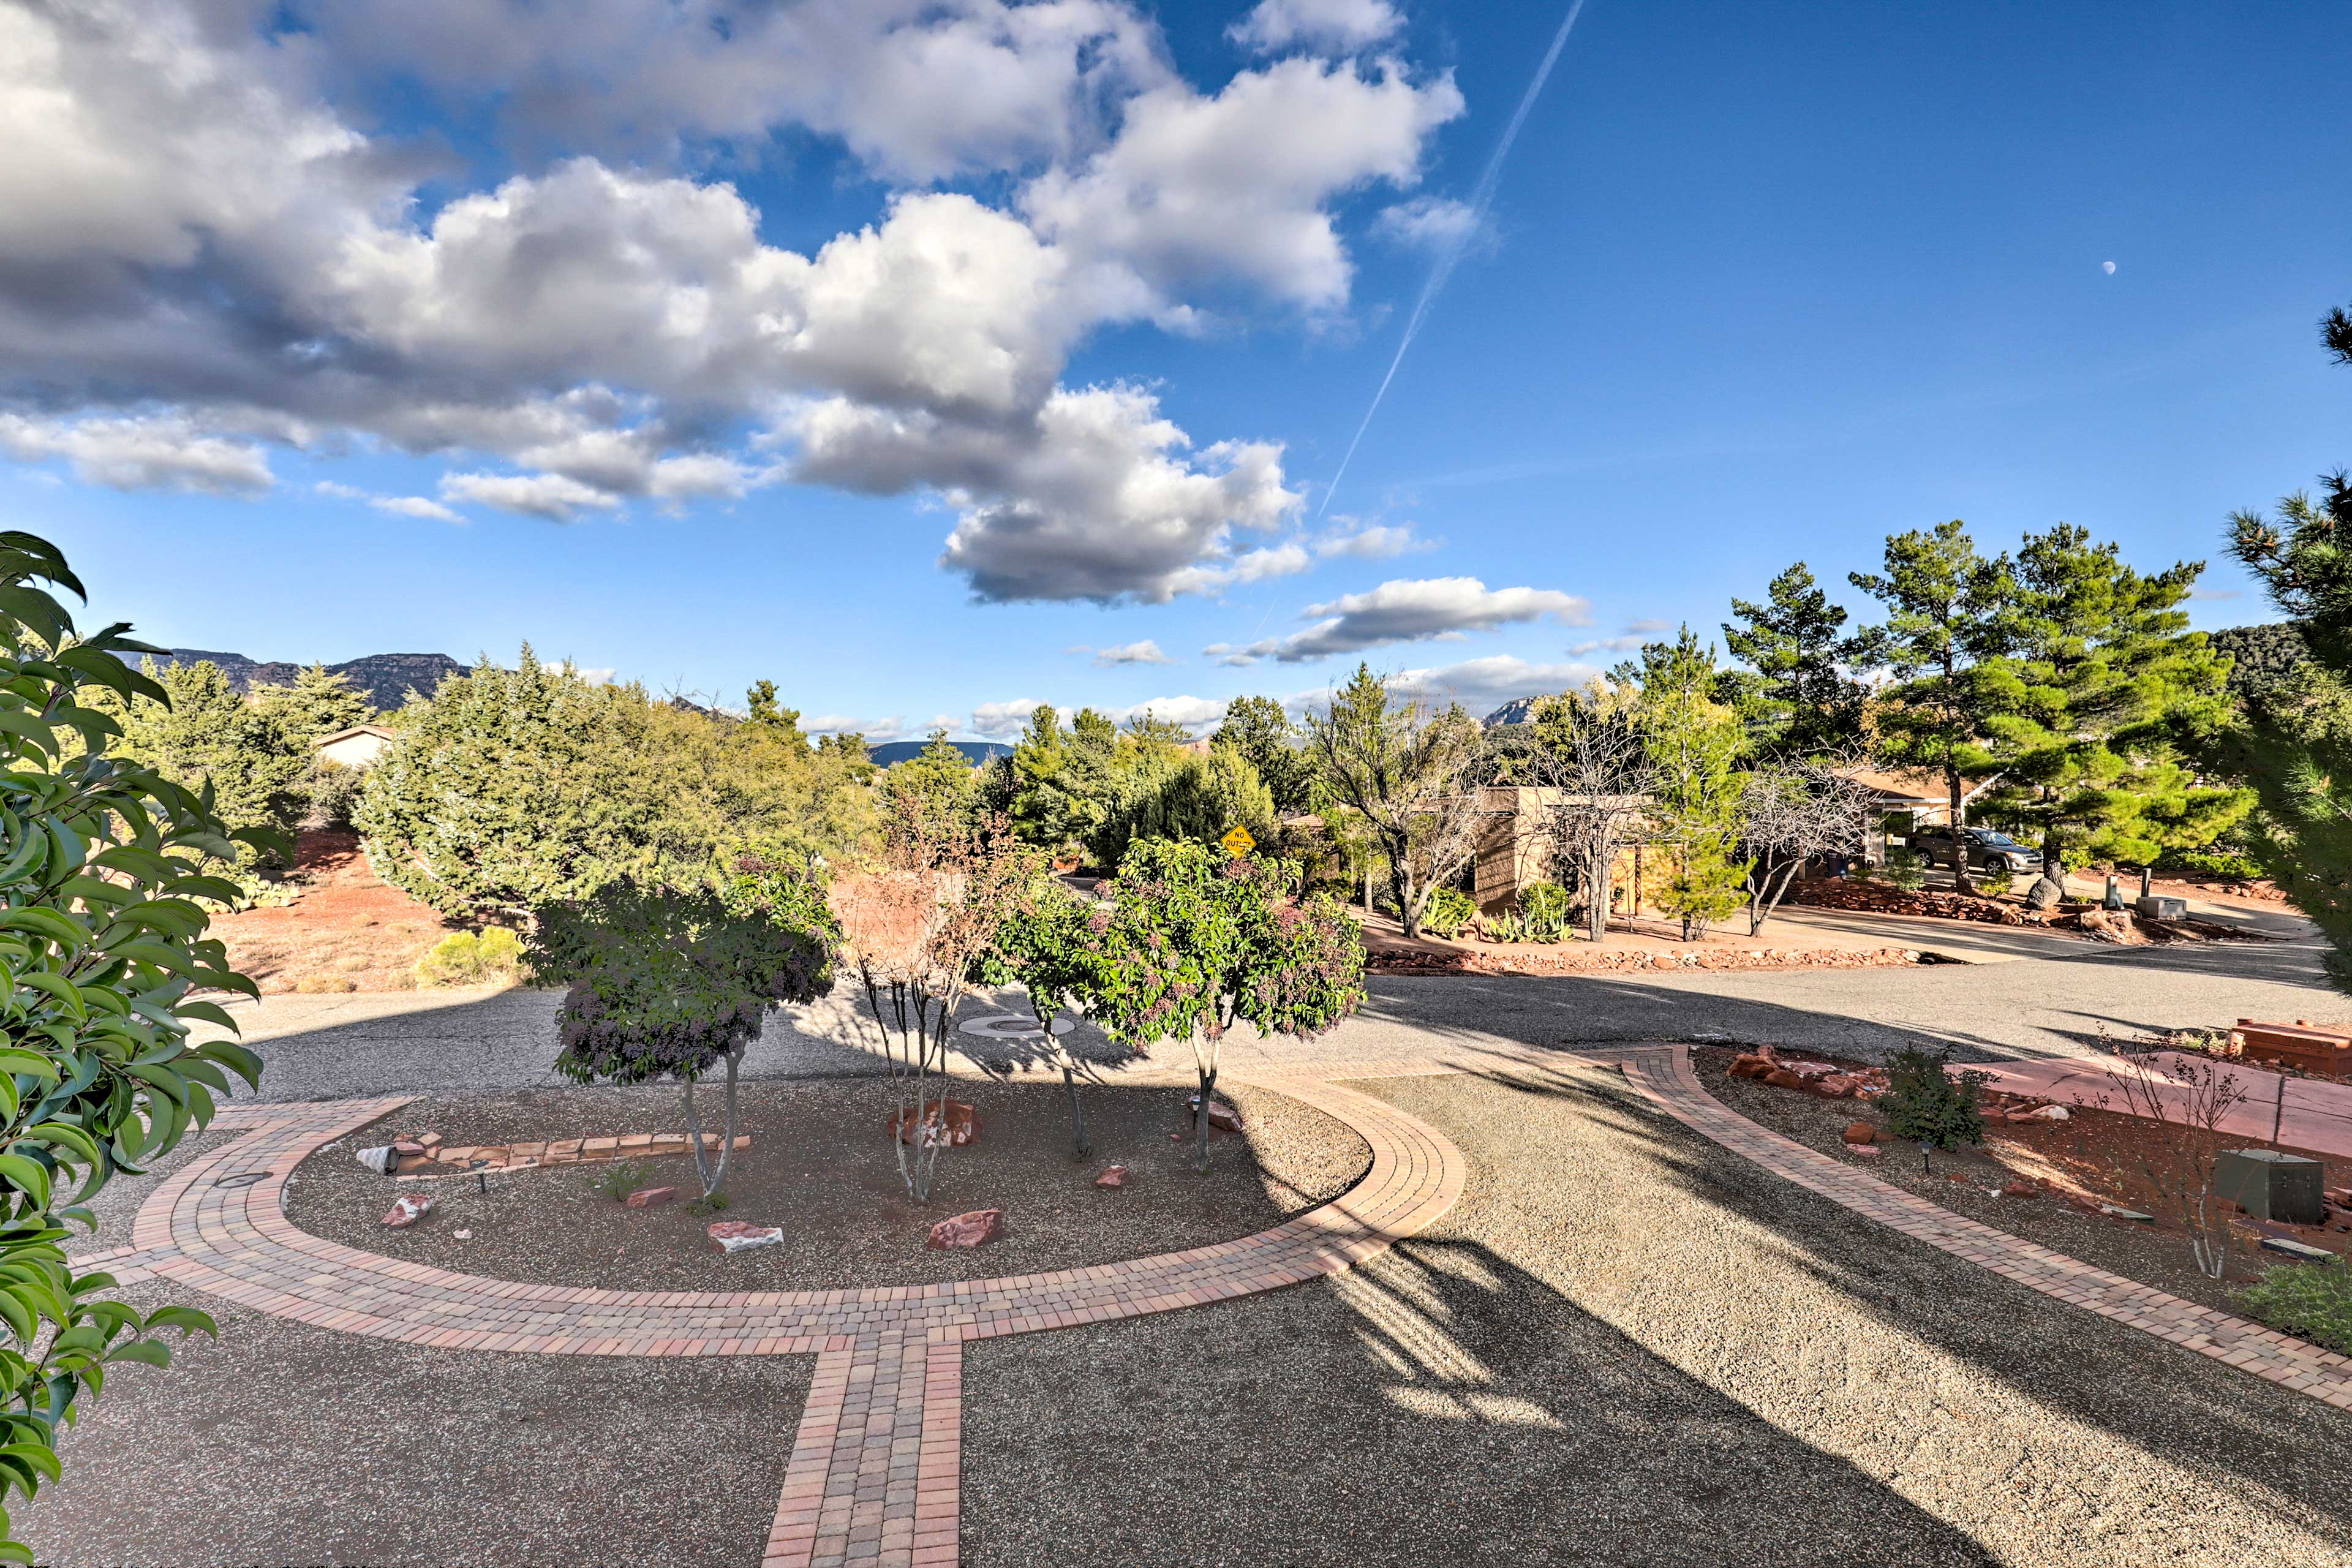 West Sedona sits less than a mile away and uptown Sedona is only minutes away!